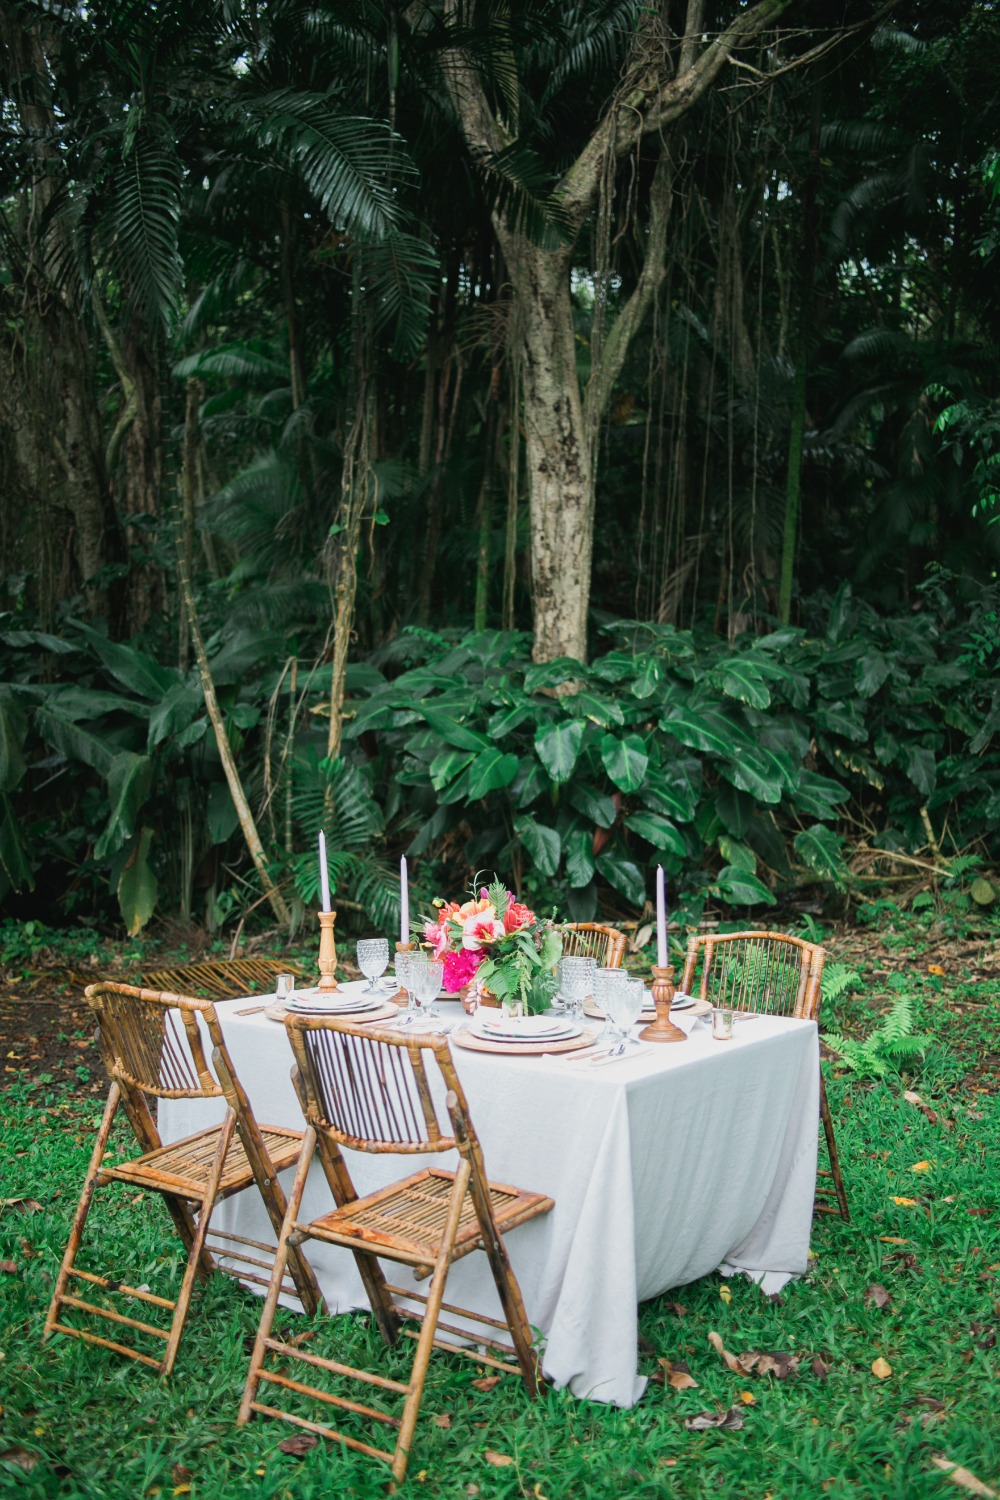 Tropical outdoor tablescape